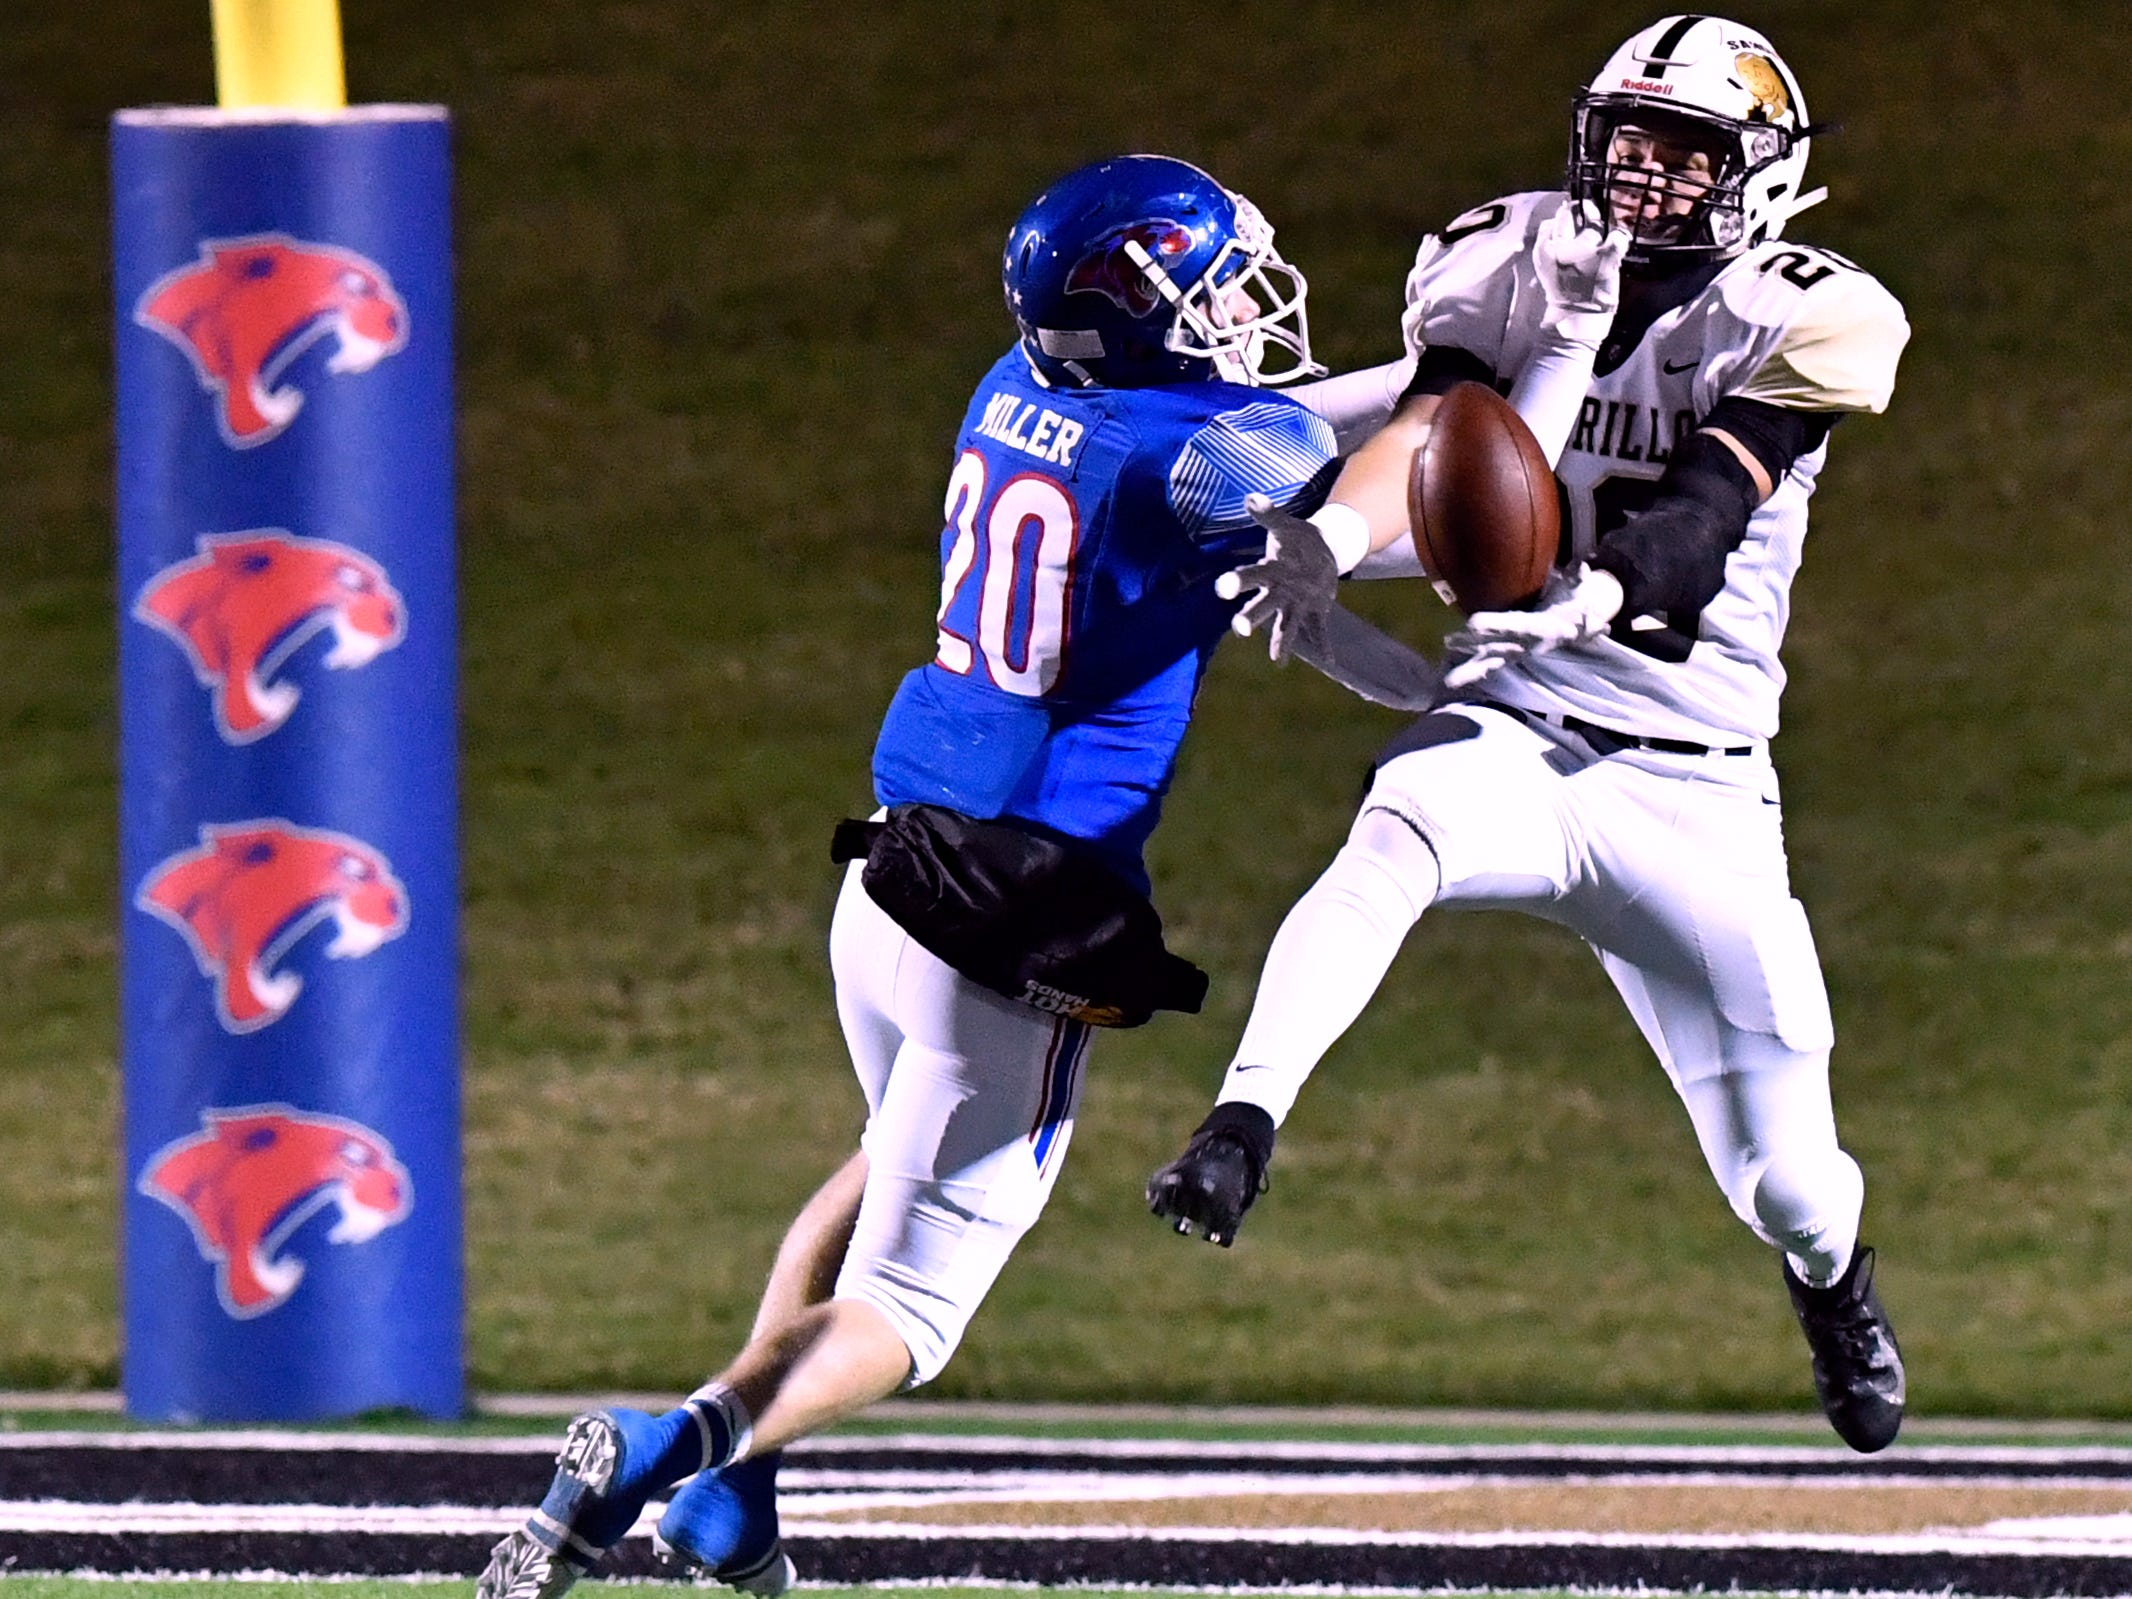 Cooper High linebacker Brady Miller breaks up the pass intended for Amarillo High's Maycin Smotherman during Friday's game at Shotwell Stadium Nov. 9, 2018. Final score was 58-27, Amarillo.